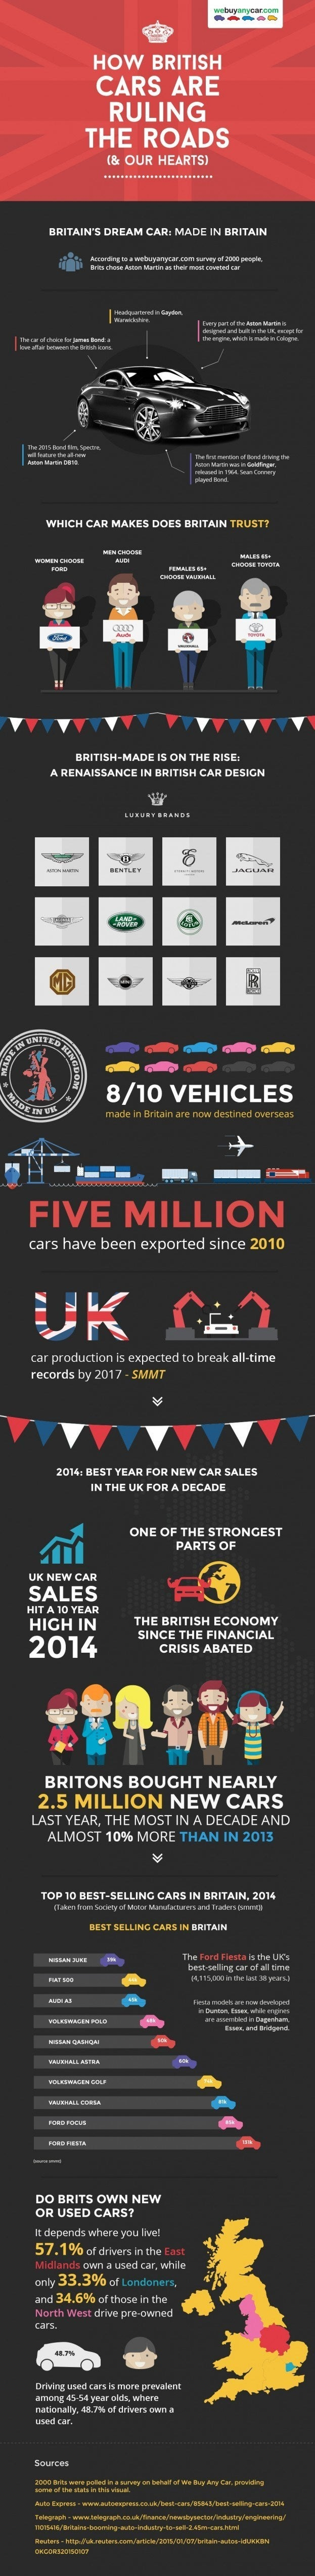 British Car Invasion Infographic